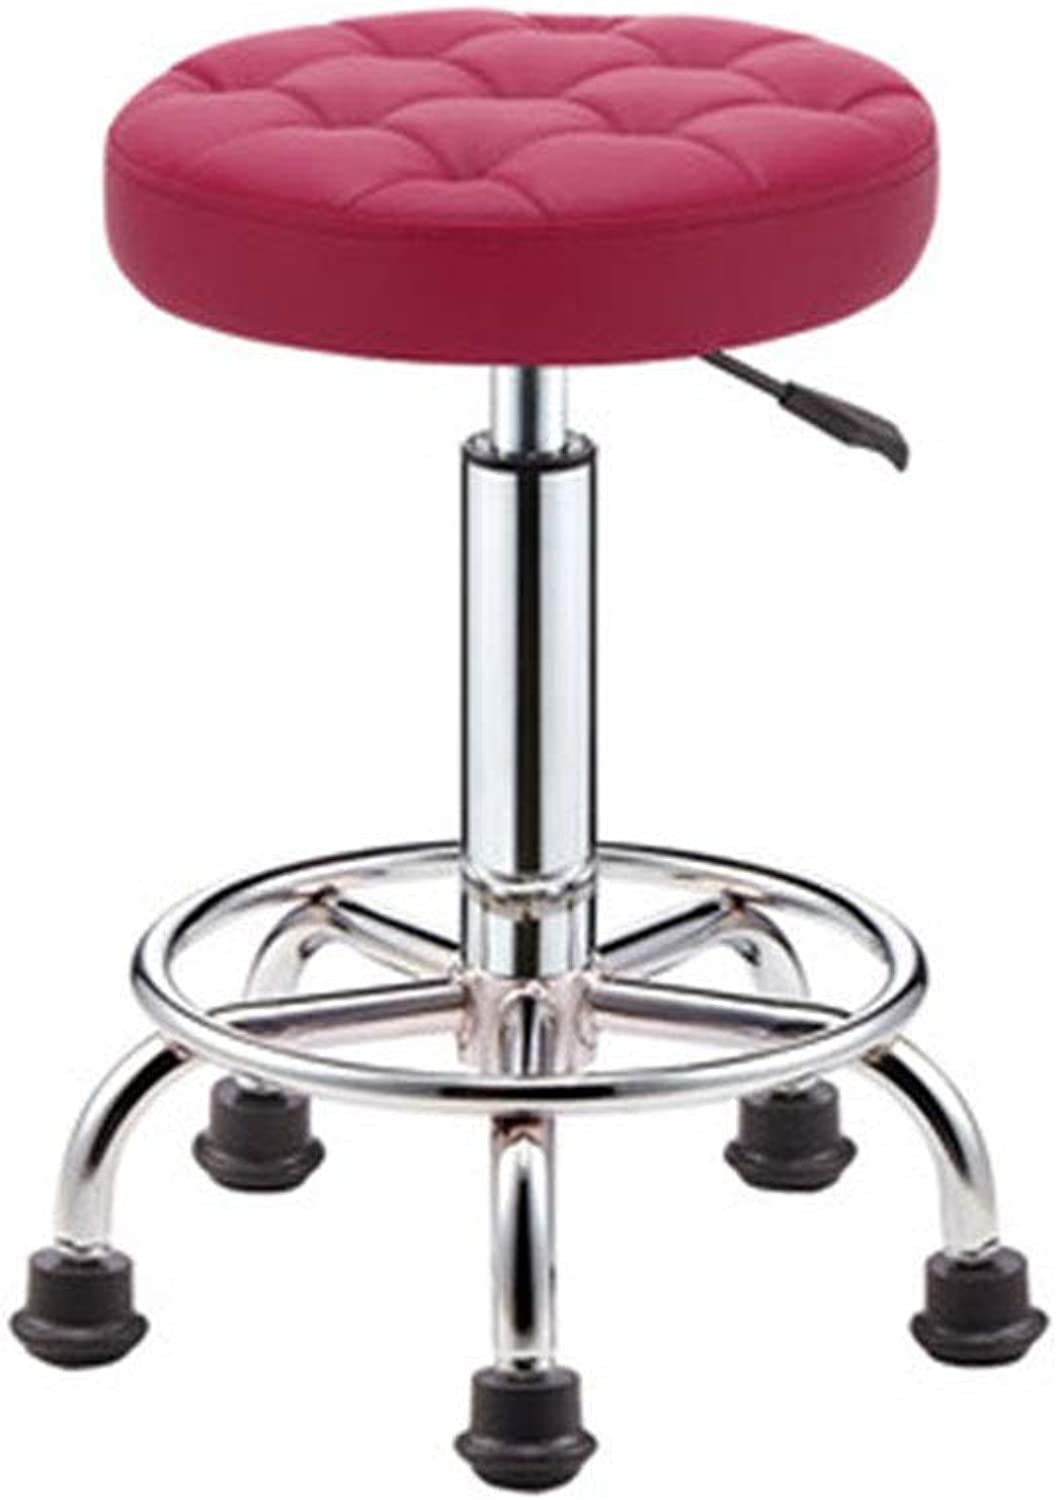 Bar Chair Beauty Stool redating Lift Pulley Work Chair Nail Stool 11 colors 1 Size (color   B)